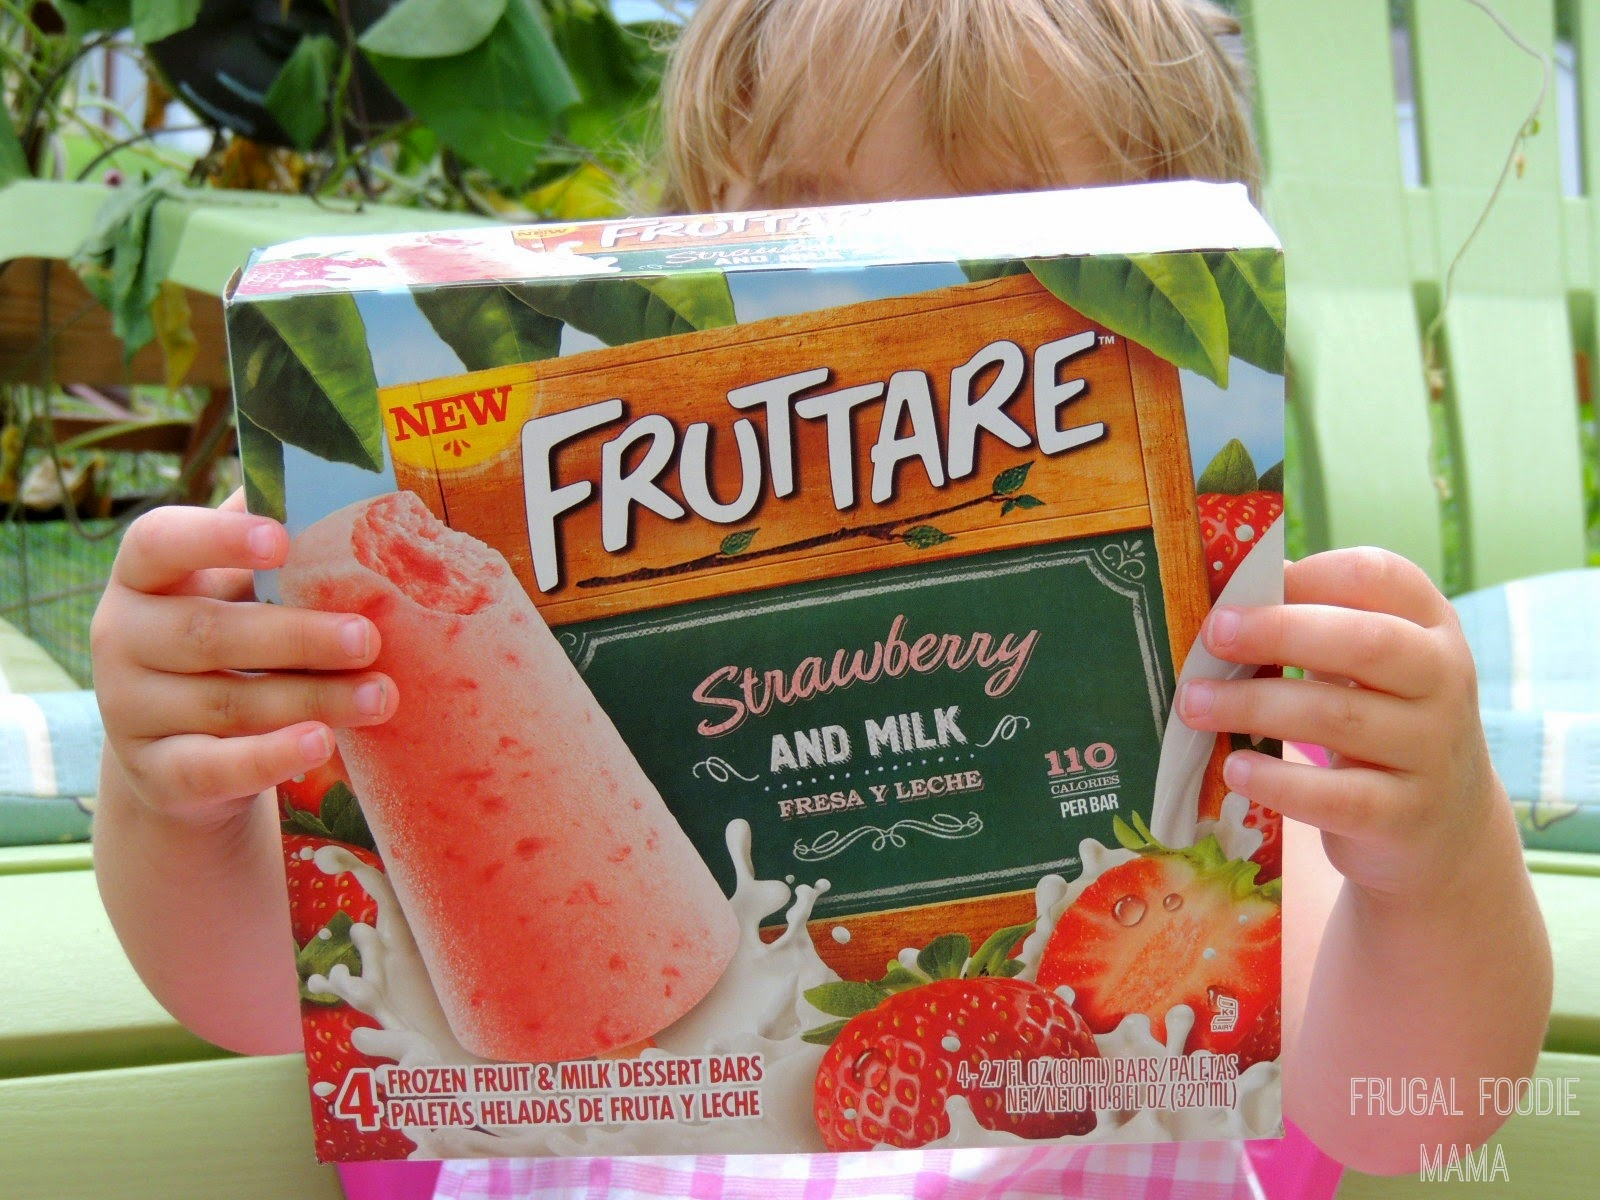 3 Simple Hacks to Prevent Frozen Treat Drips via thefrugalfoodiemama.com #itsallgood #sponsor